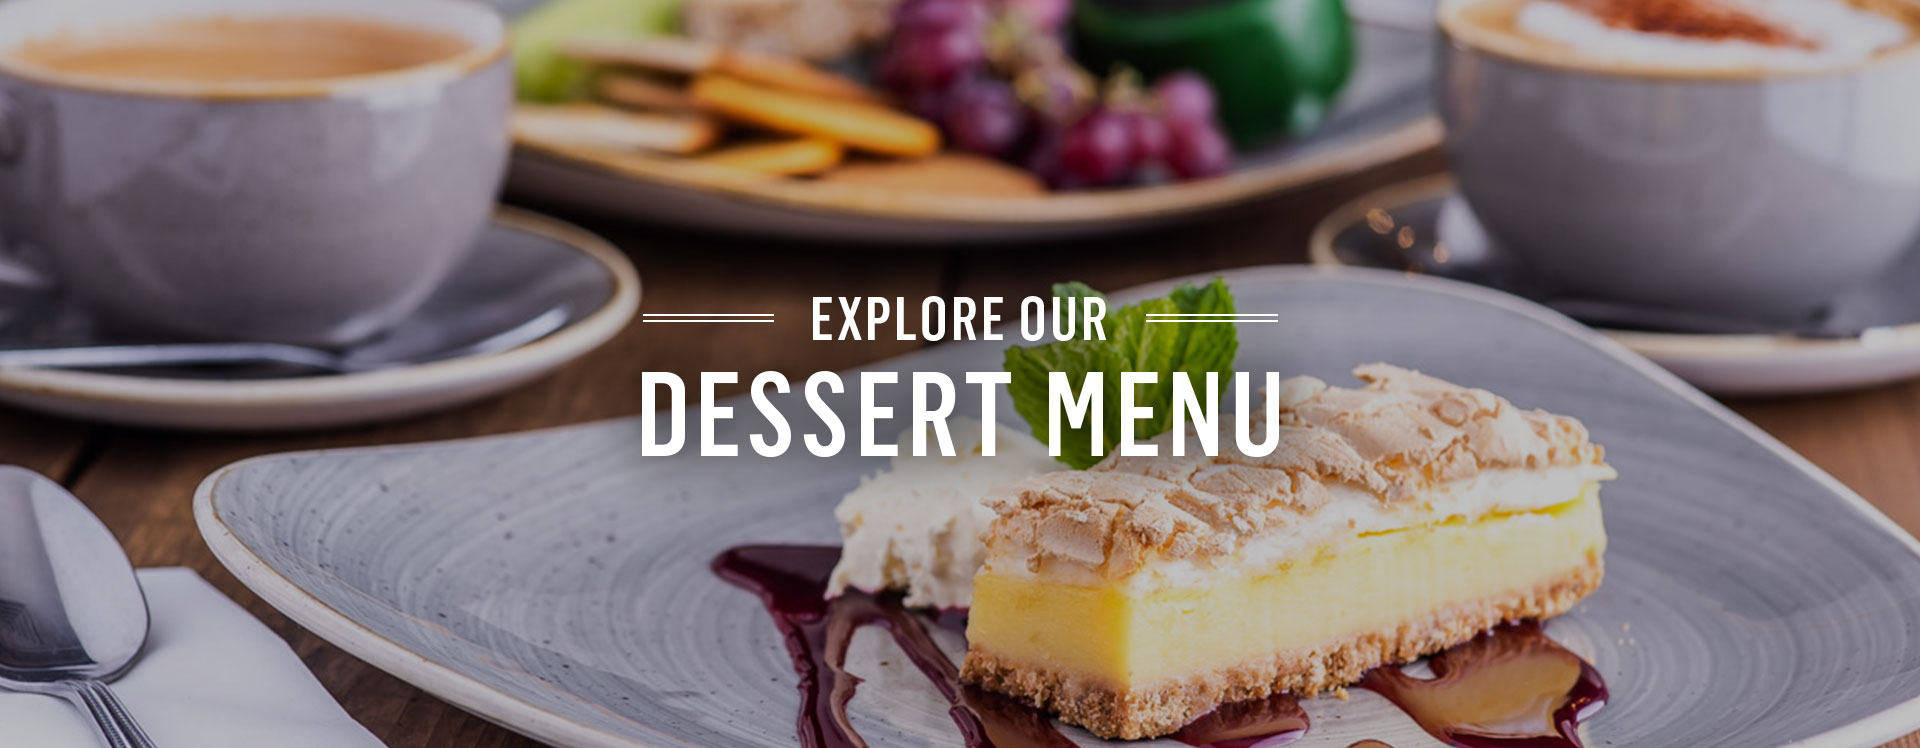 Dessert menu at The Old Bell Tavern - Book a table